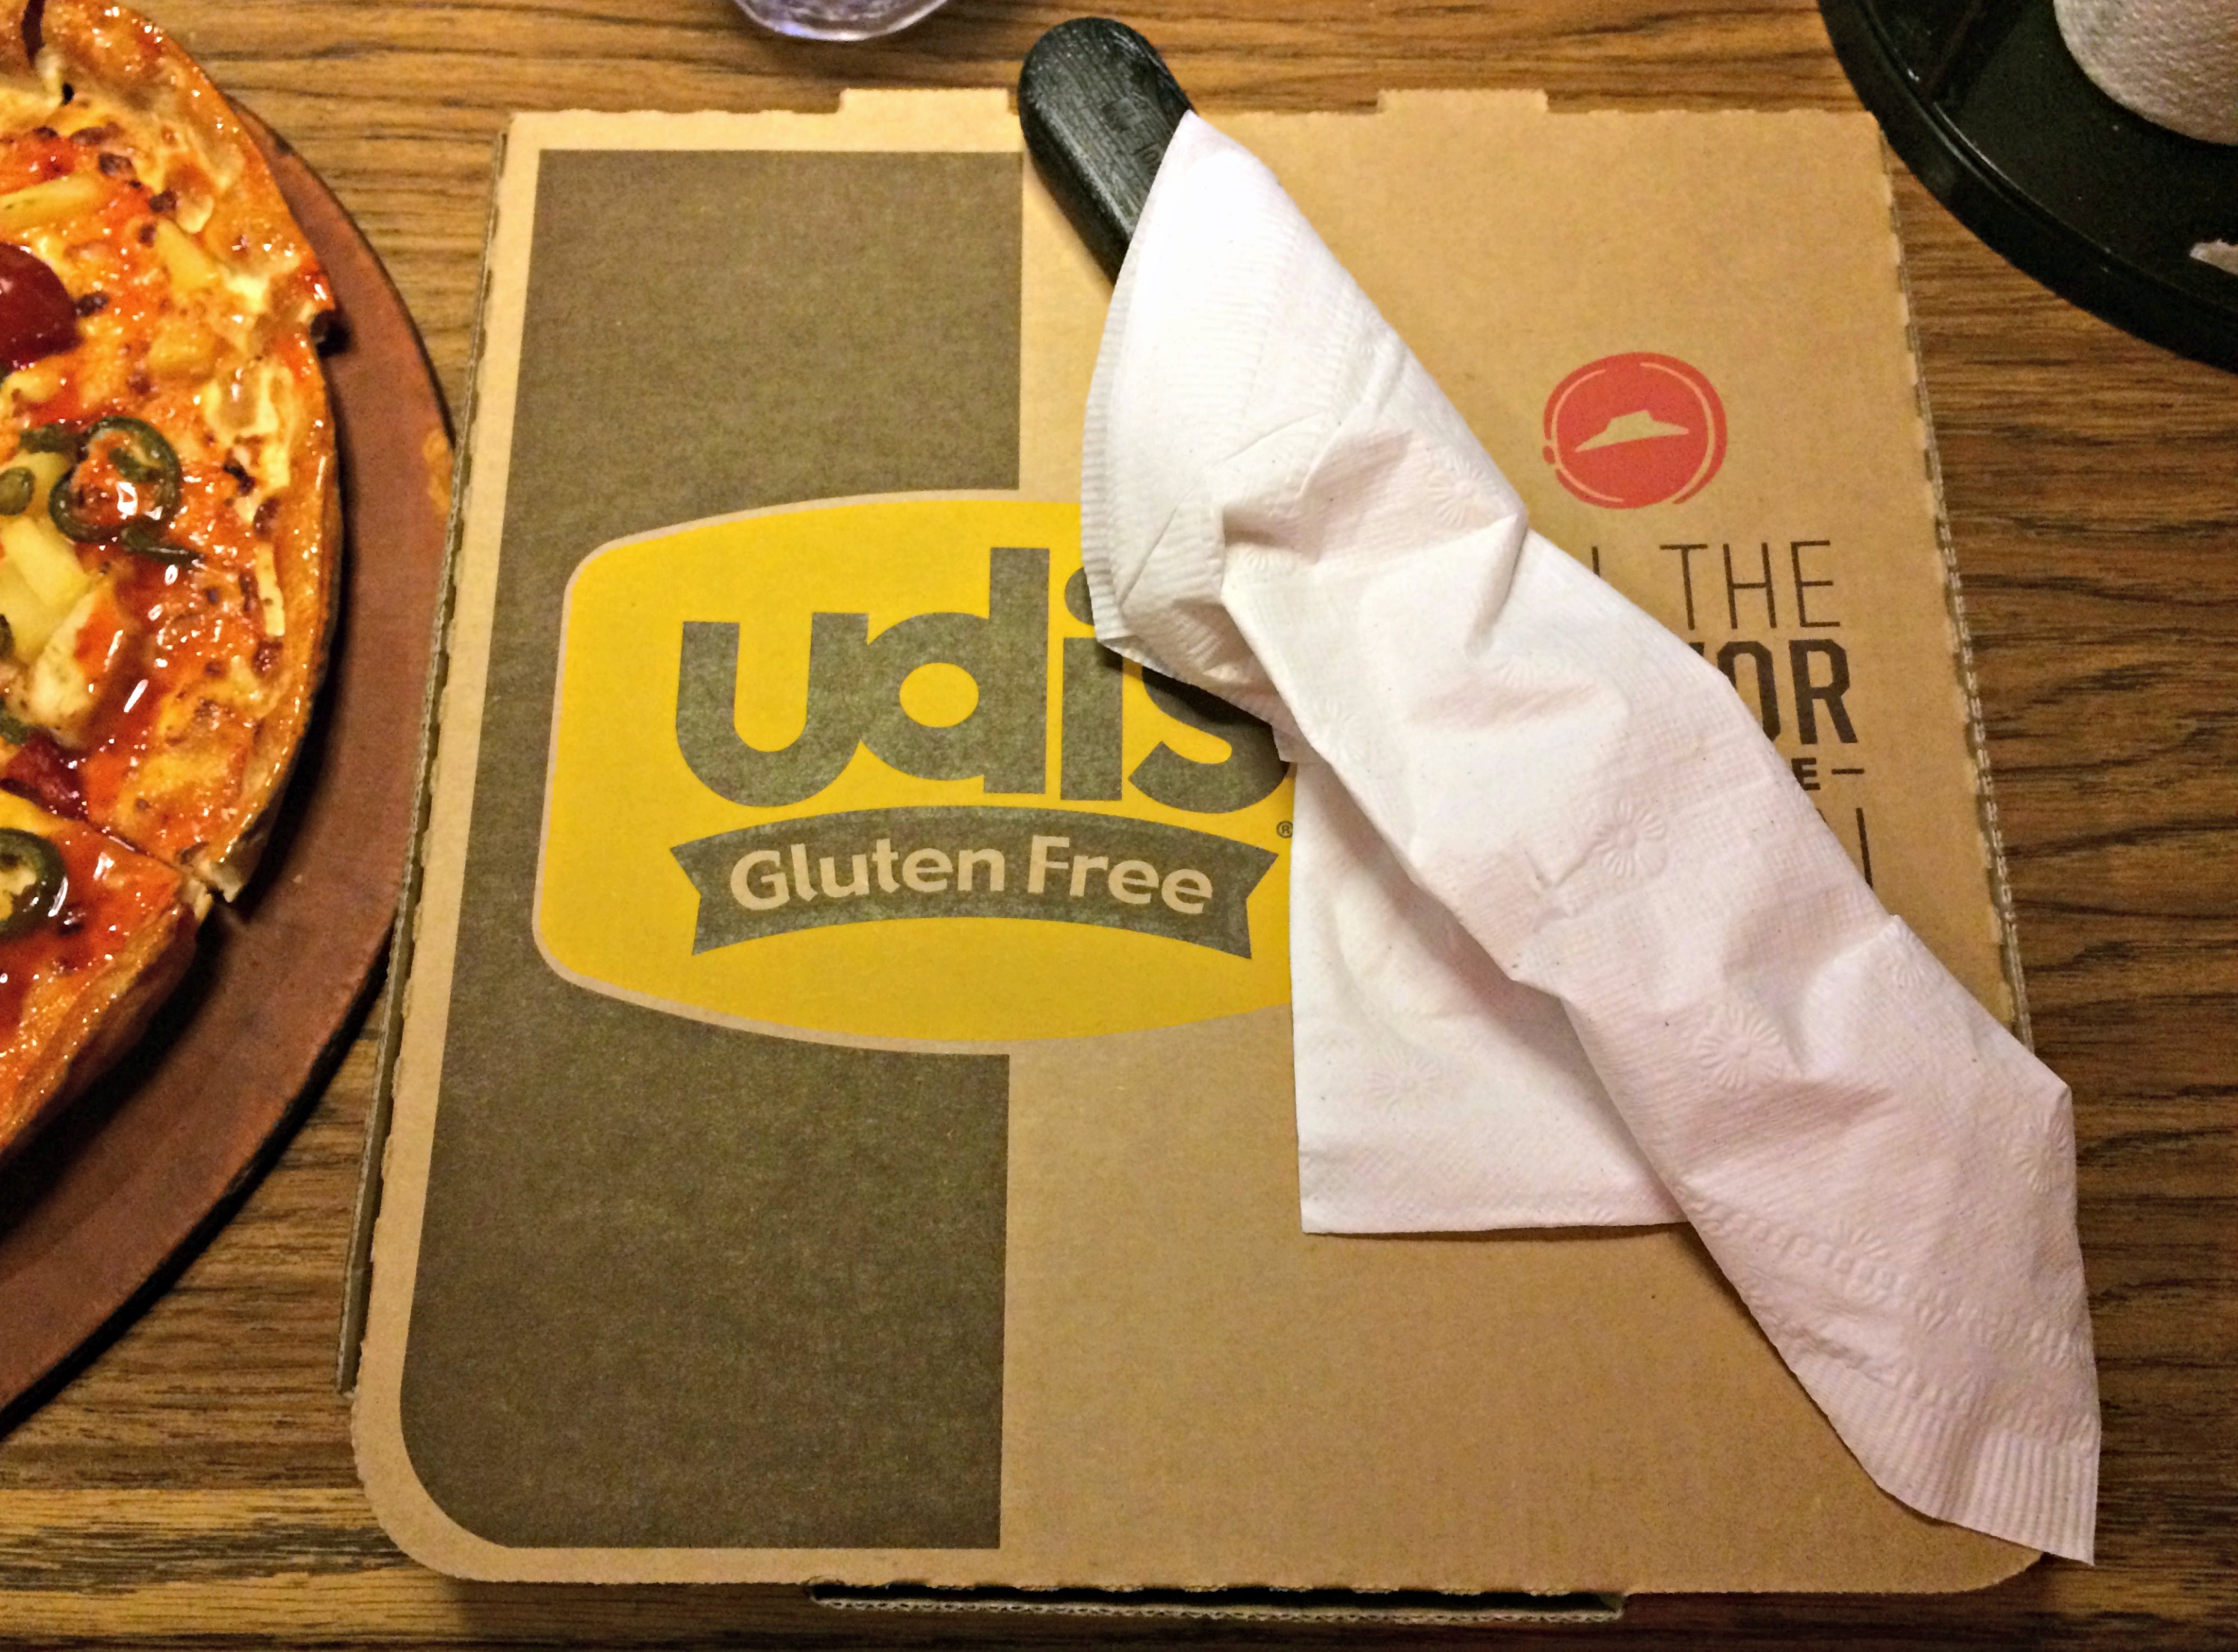 udi's crust at pizza hut